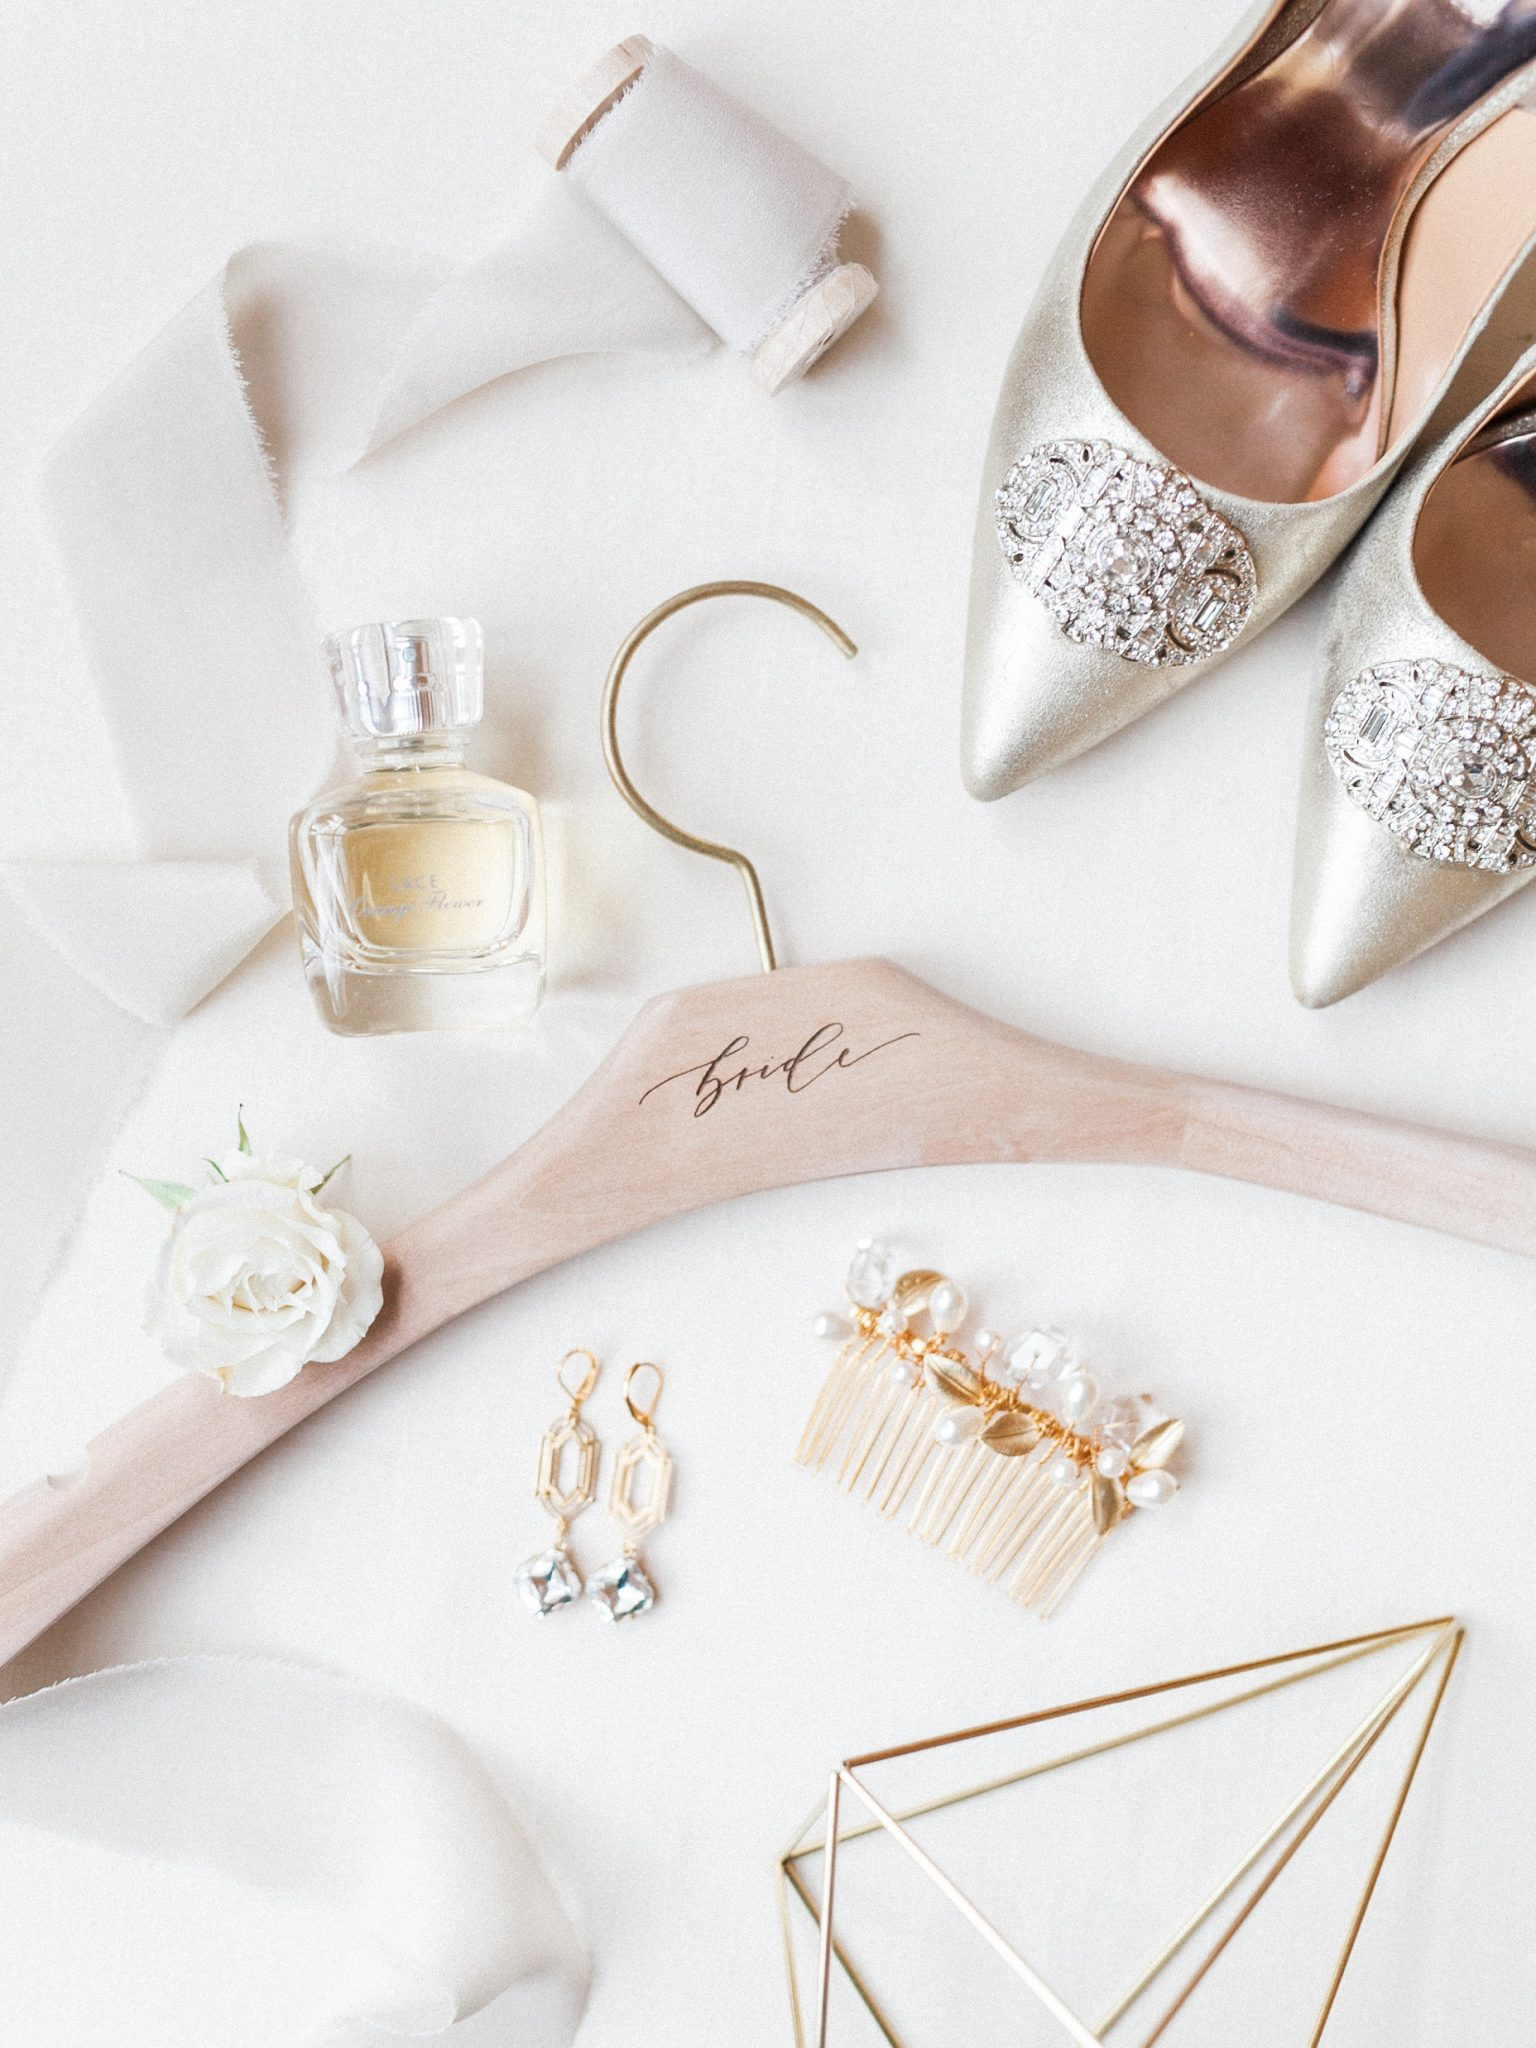 View More: http://rebekahemily.pass.us/styledshoot2016